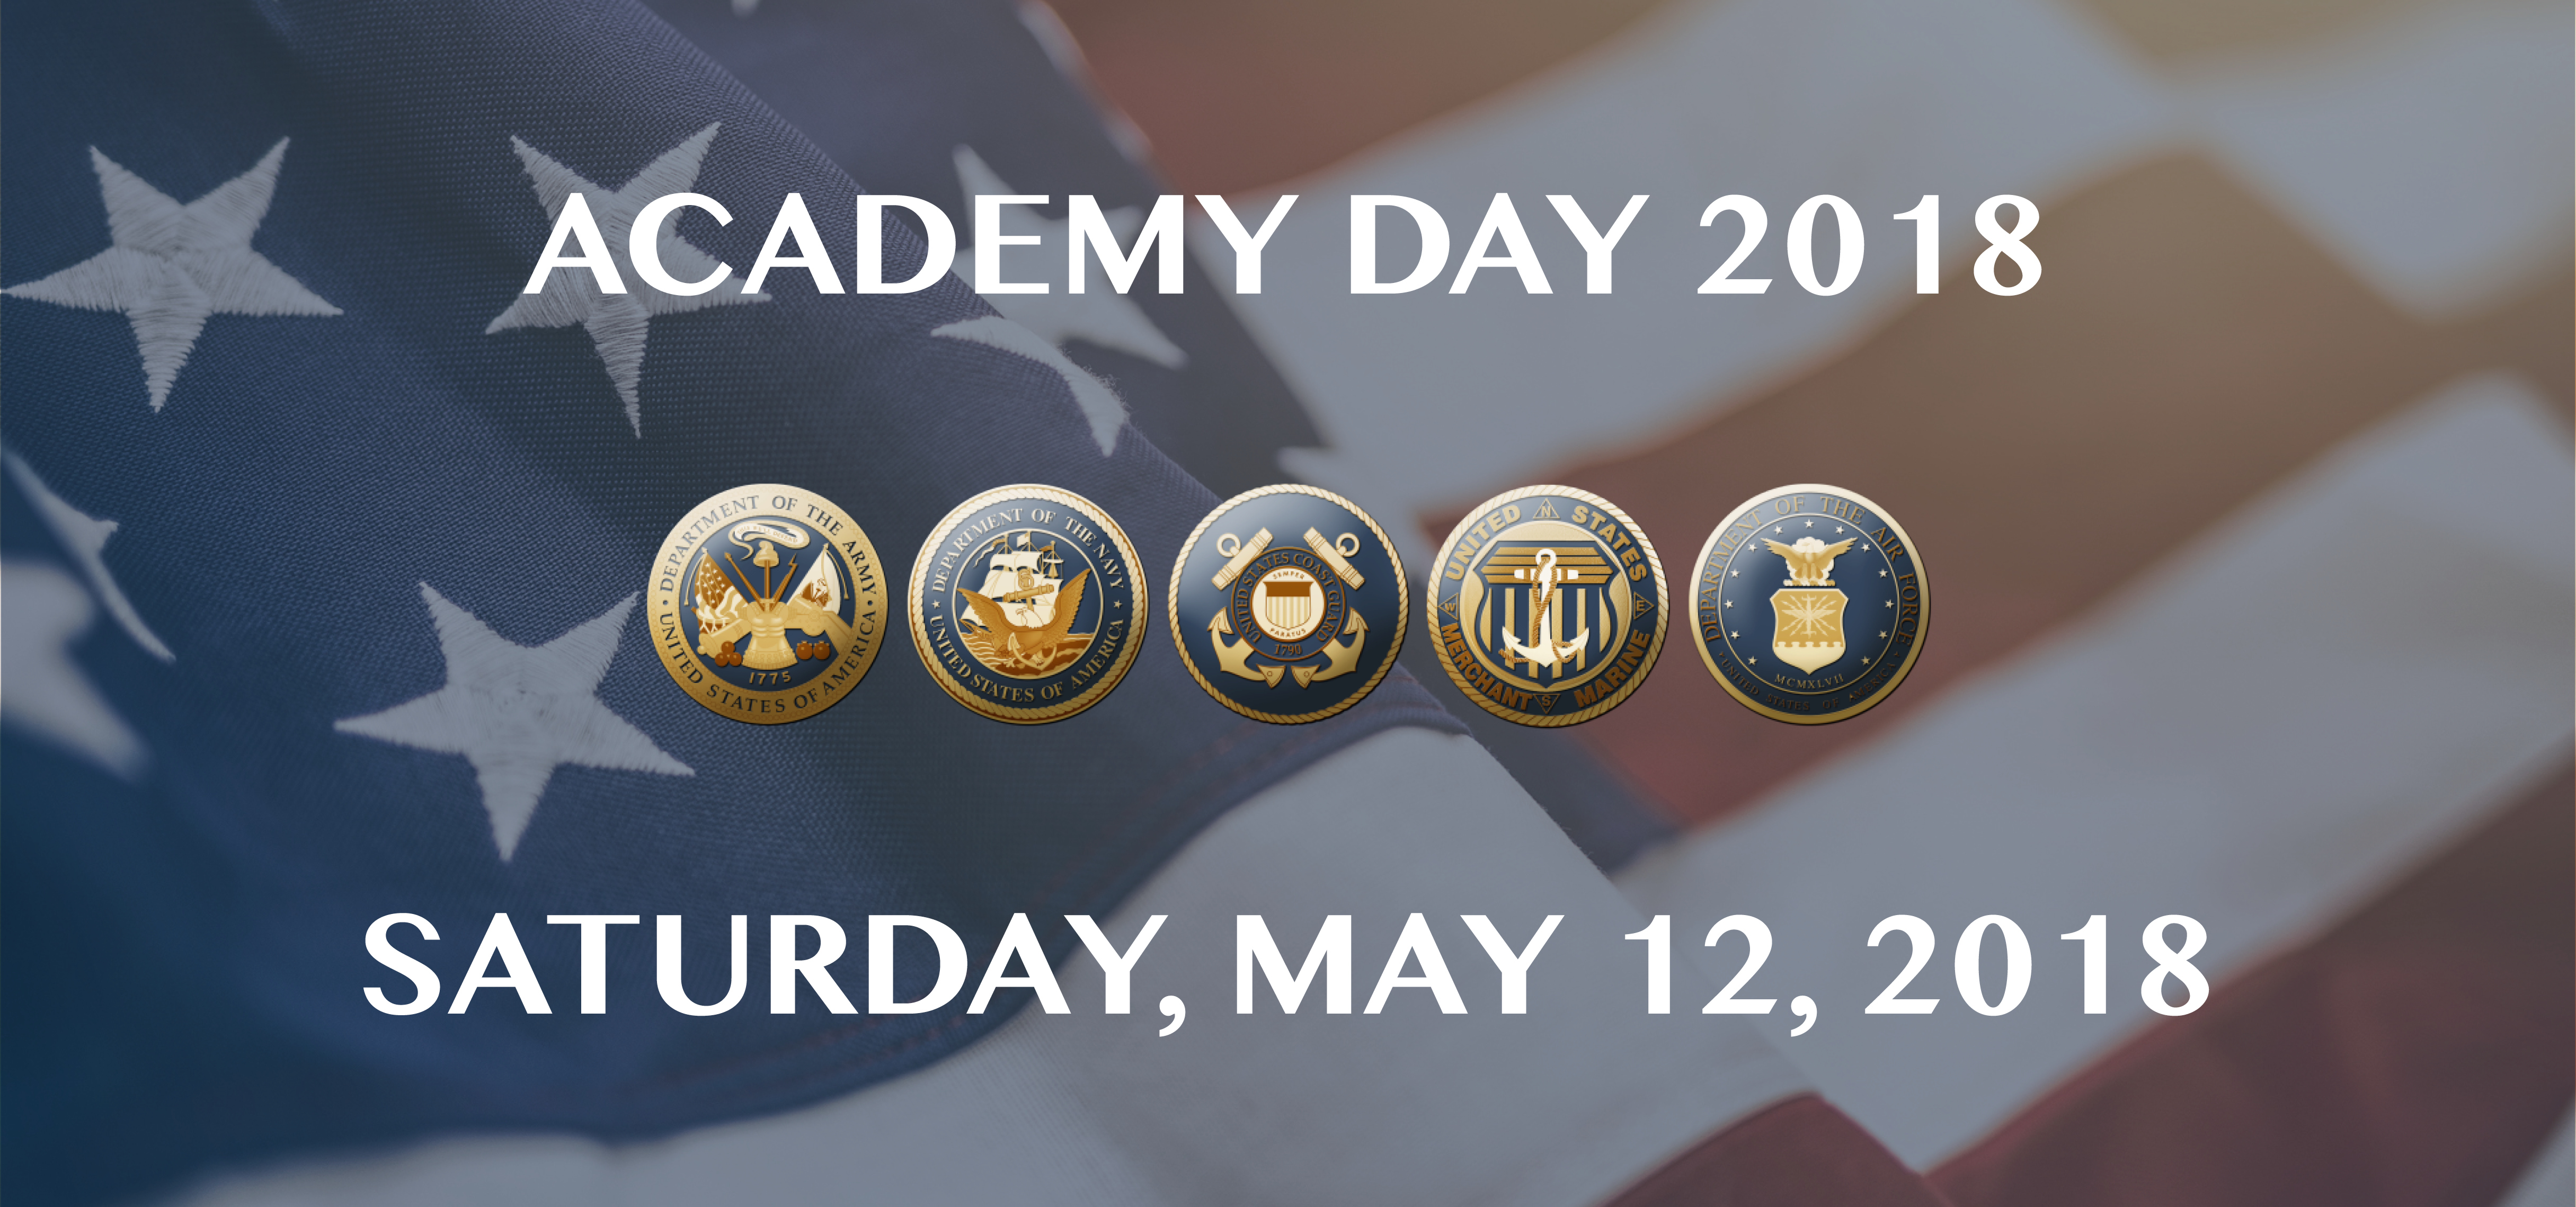 Academy Day